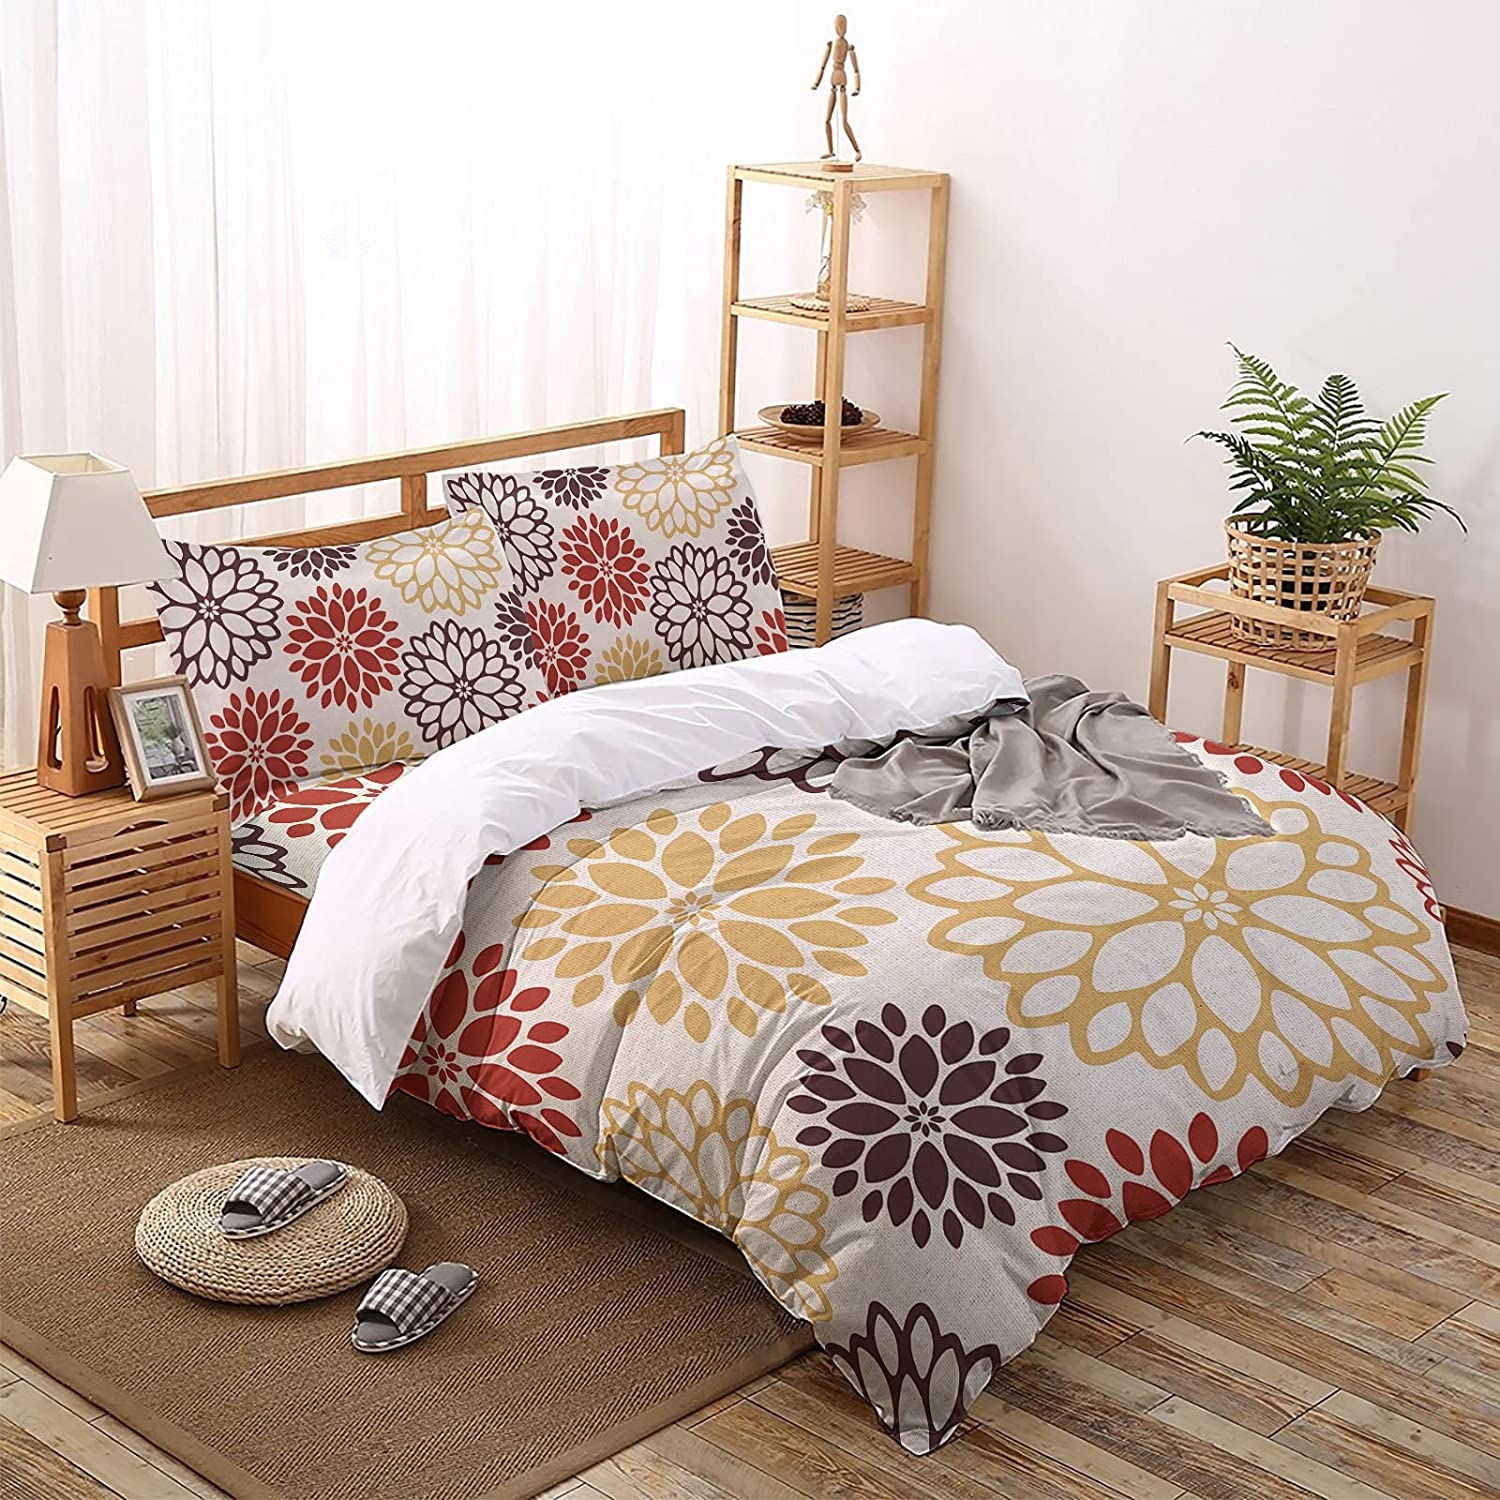 MUSEDAY 4 Pieces Duvet Cover Yellow SetRed Bedding Gradient Limited time cheap sale online shop Retr